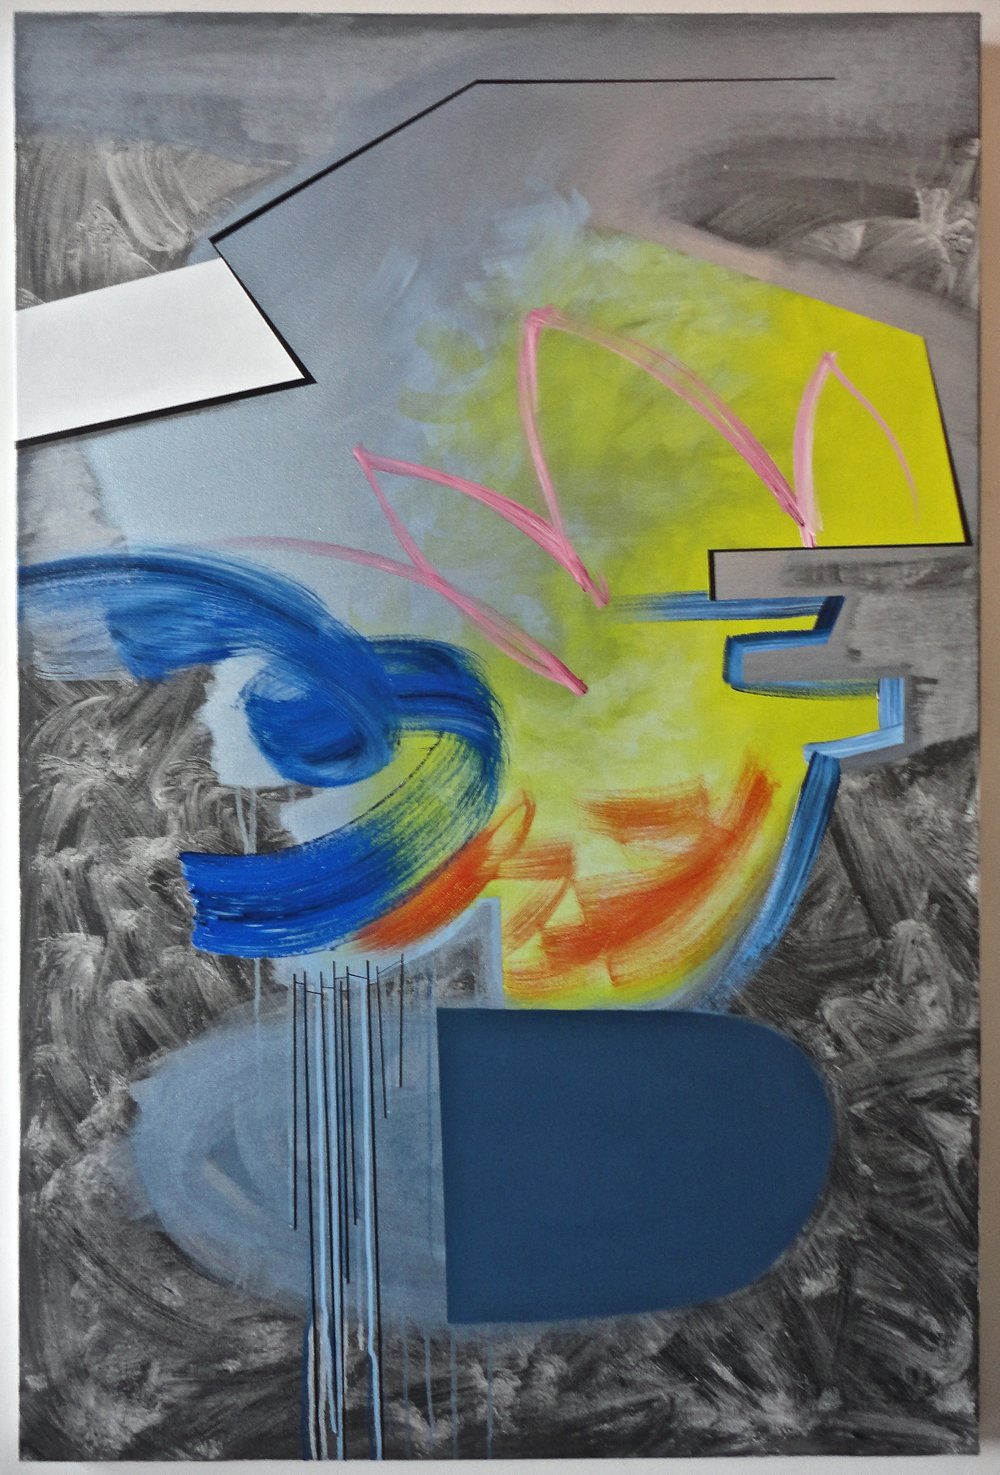 """Untitled (Over/Under). $2,200.00, 06/15/15, 60""""Hx40""""Wx1.5""""D, acrylic/metallic paint, charcoal, on canvas."""